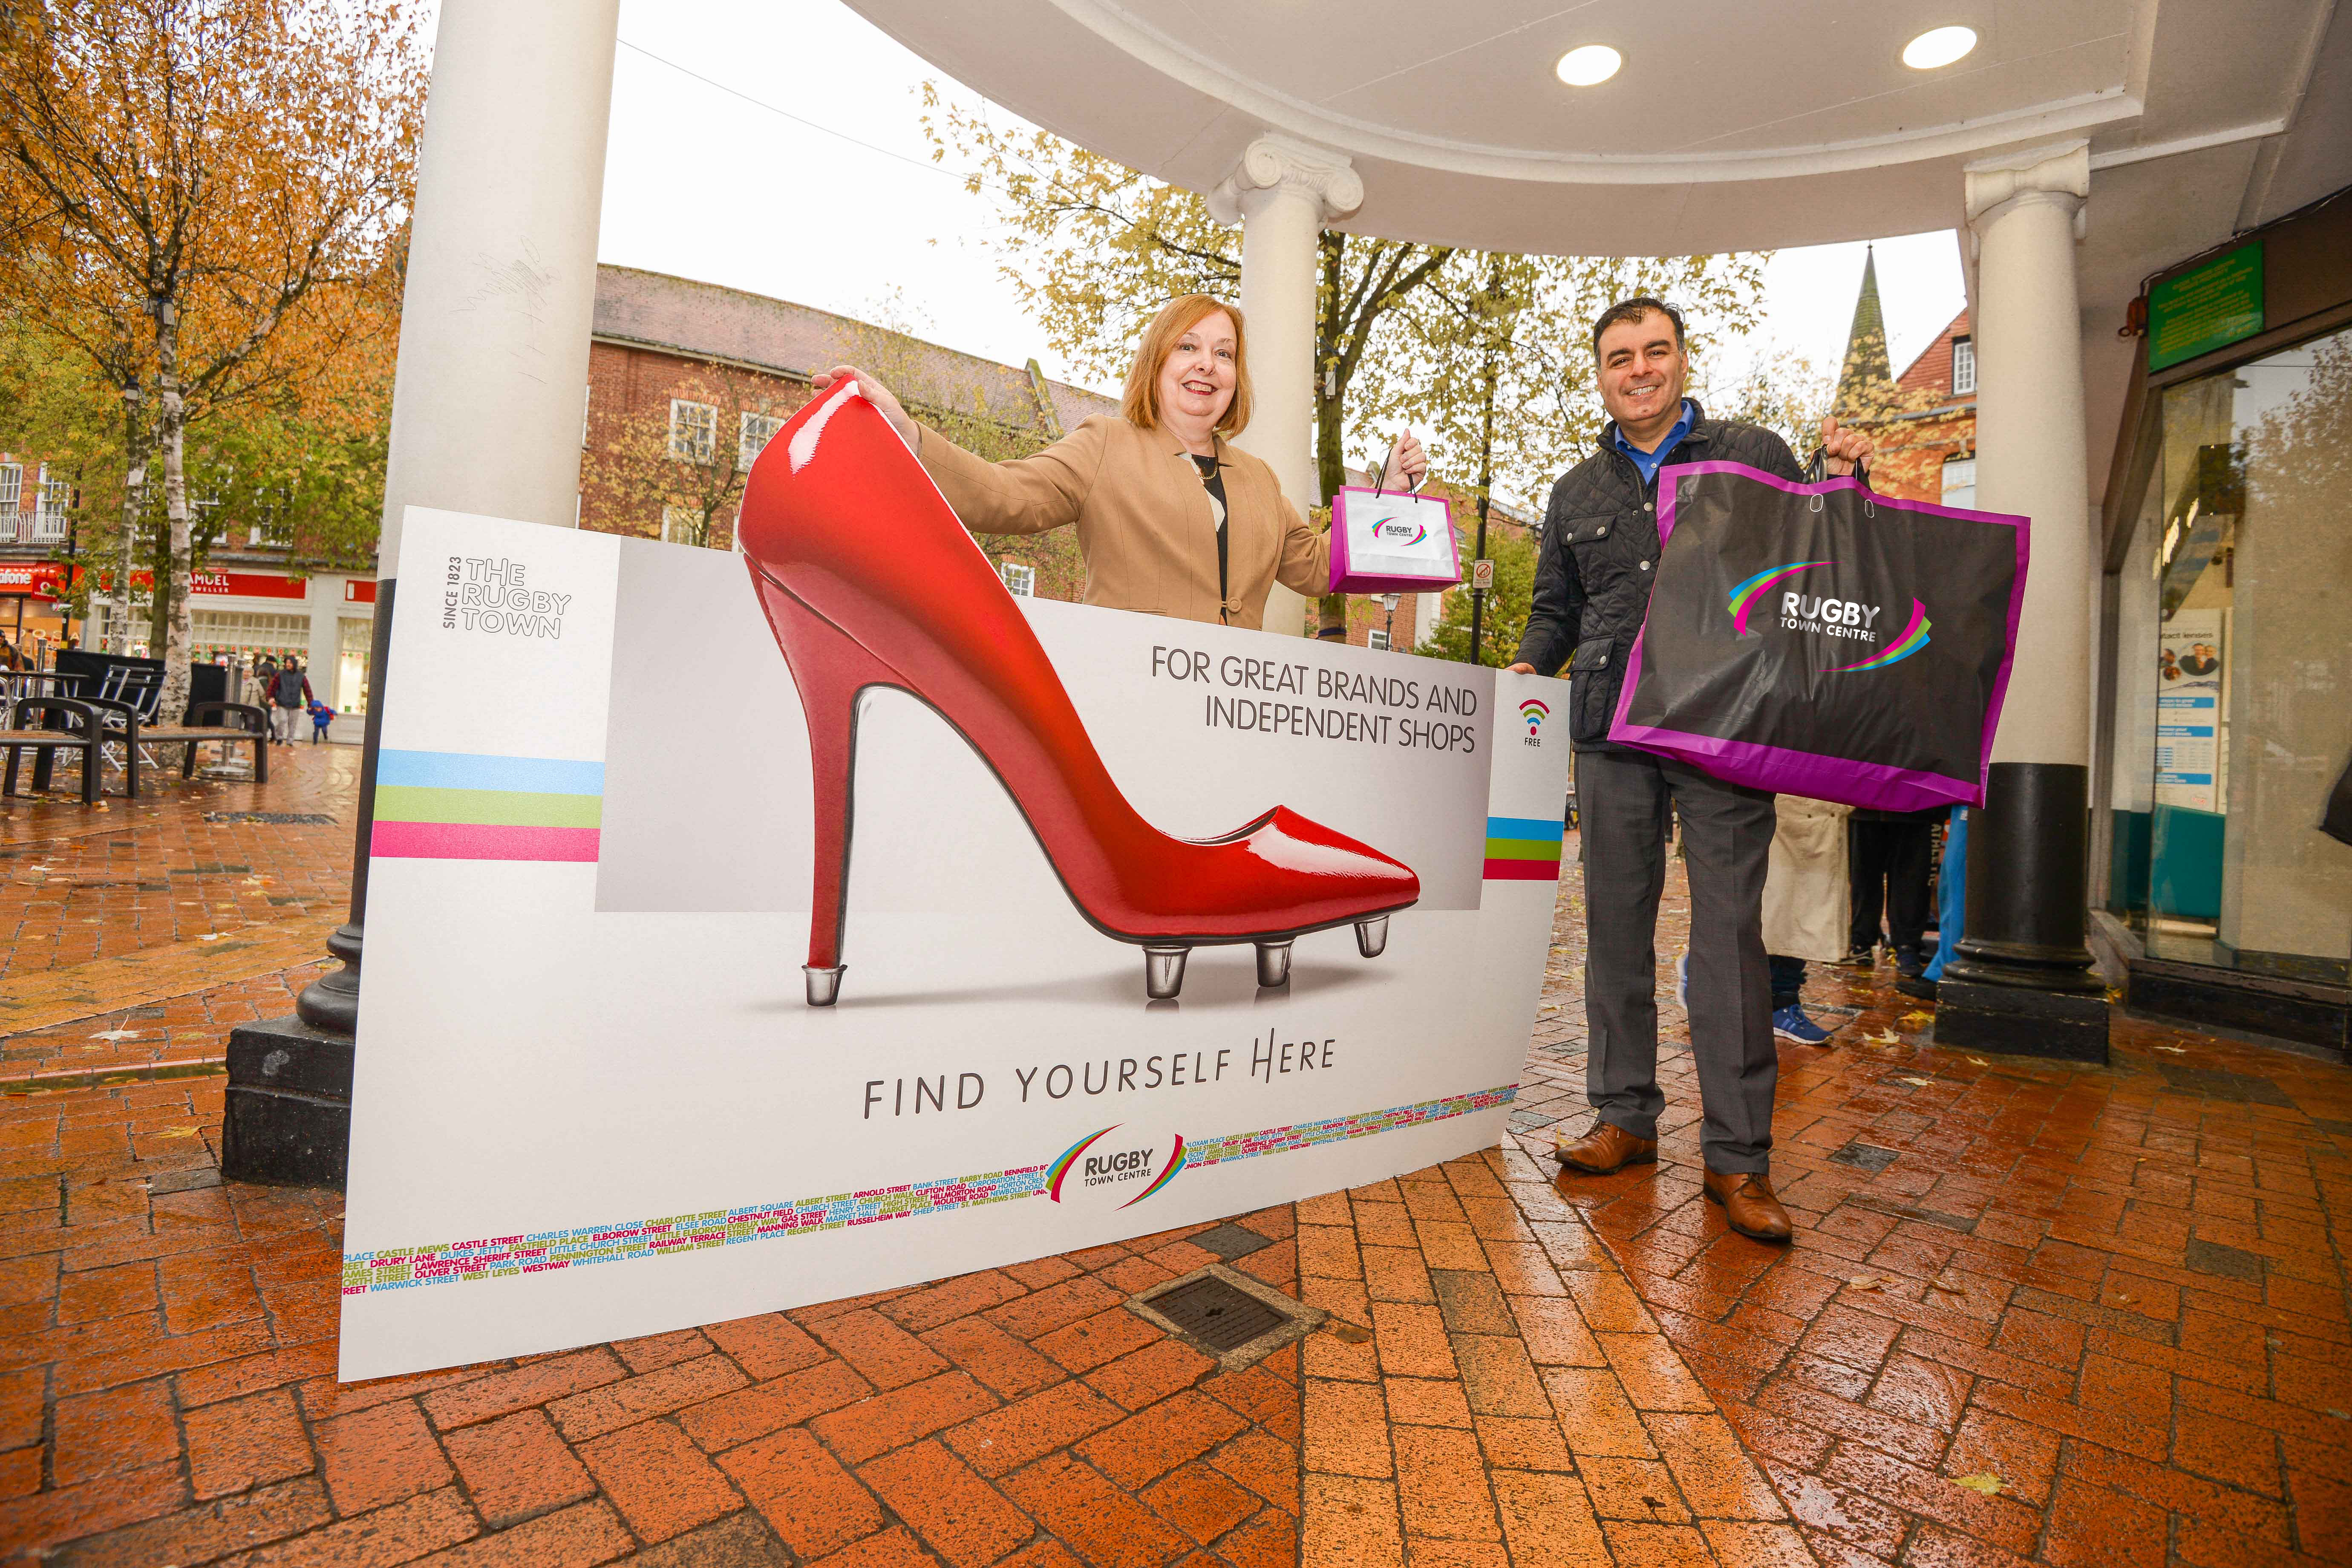 New promotional brand for Rugby town centre